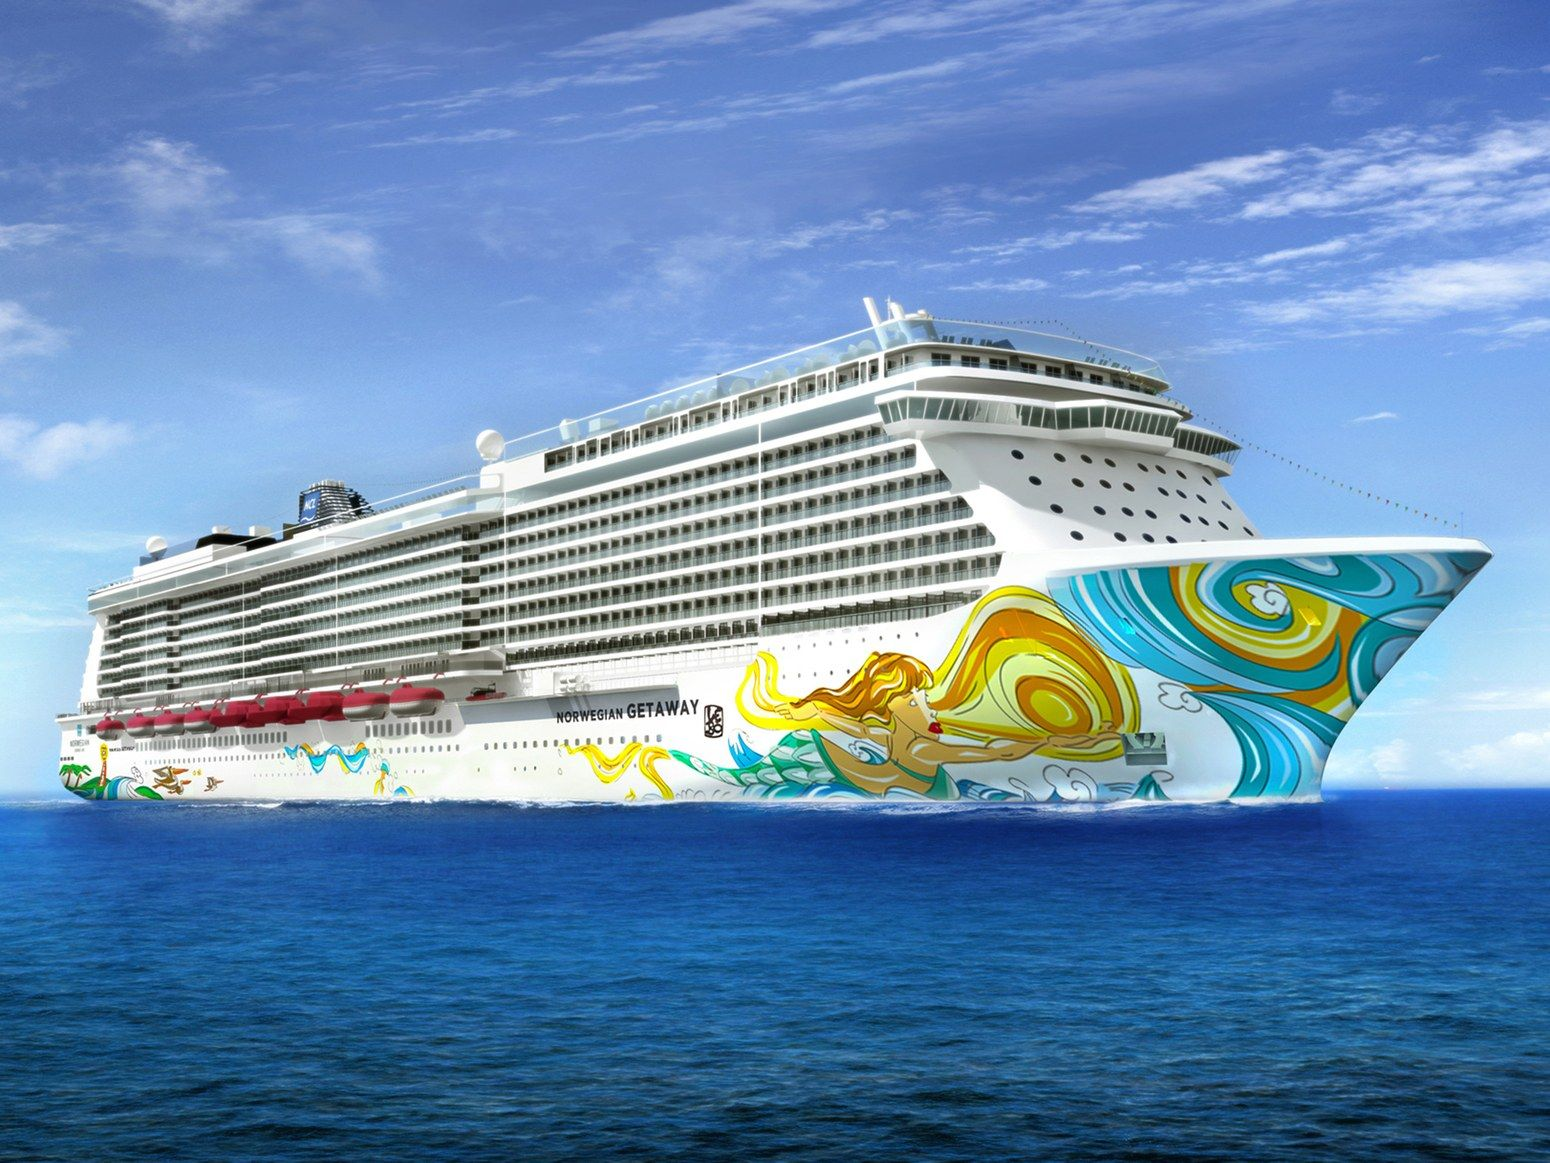 The Best Cruise Lines In The World Choice Awards Cruises And - Best cruise ship for honeymoon